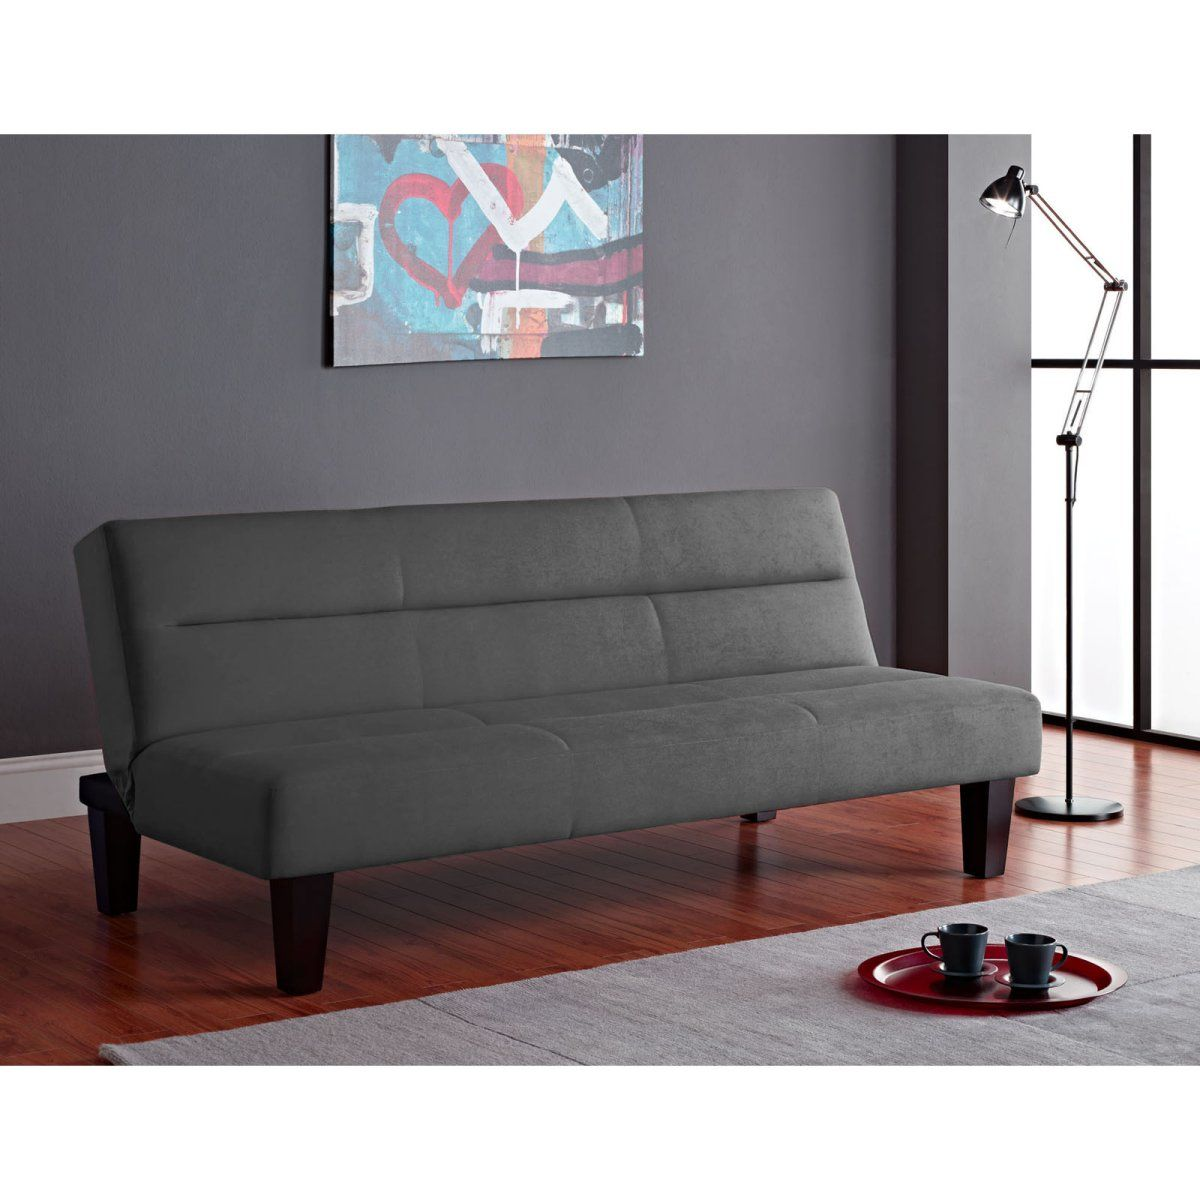 ameriwood kebo futon  charcoal ameriwood kebo futon  charcoal   one day i will have my own place      rh   pinterest